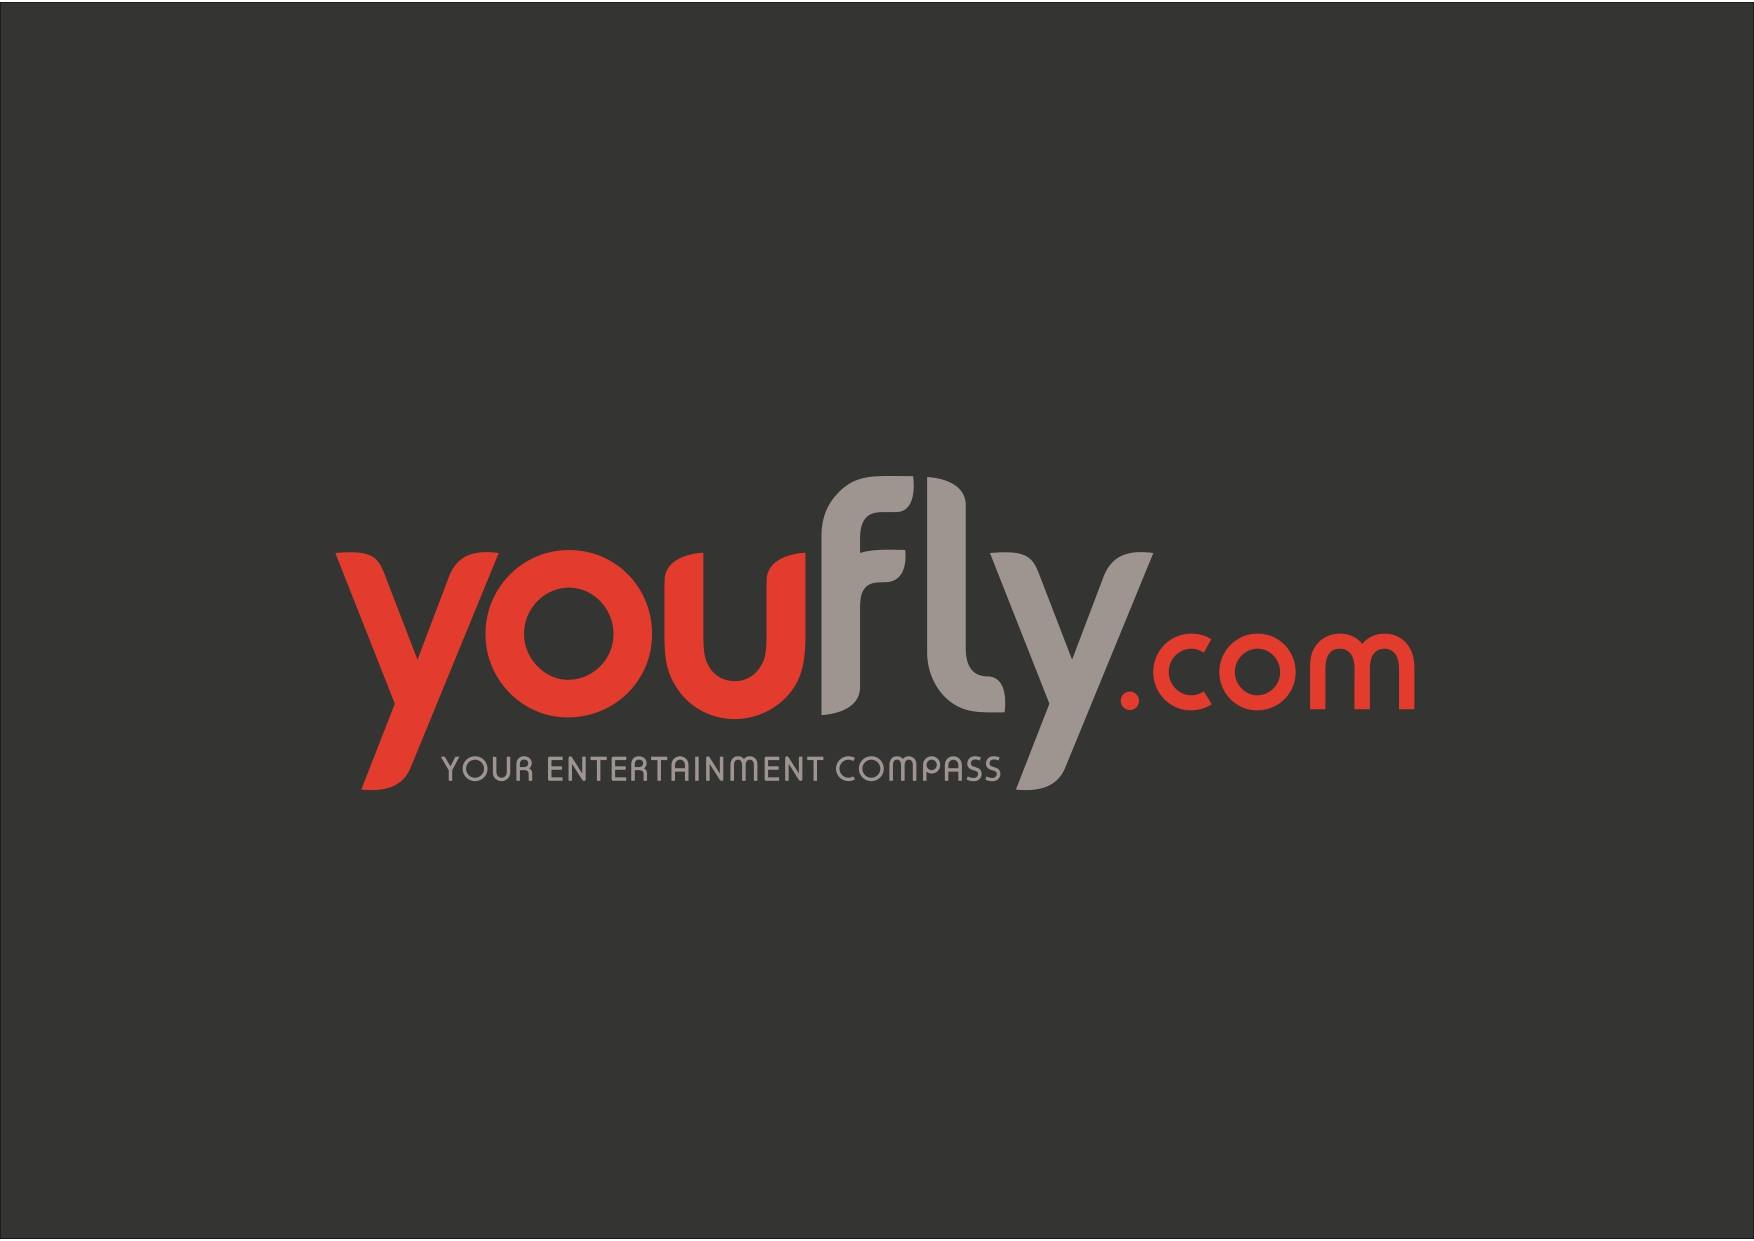 youfly